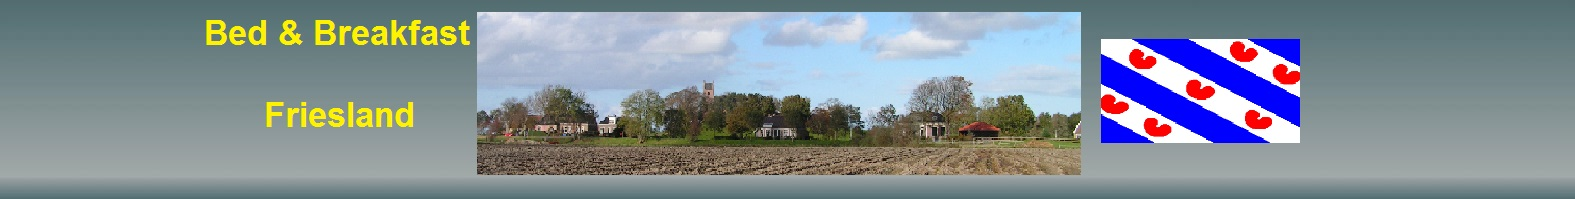 wrapper bed & breakfast friesland